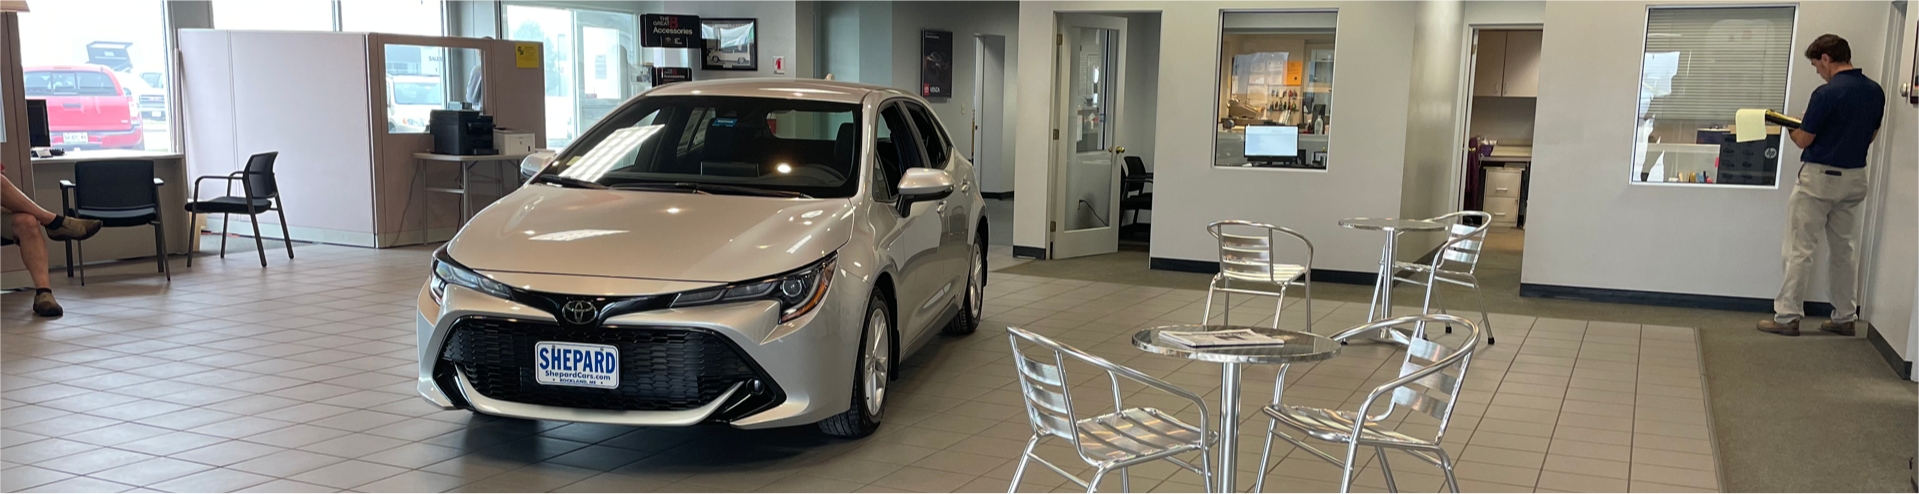 Image of inside waiting room of Shepard Toyota